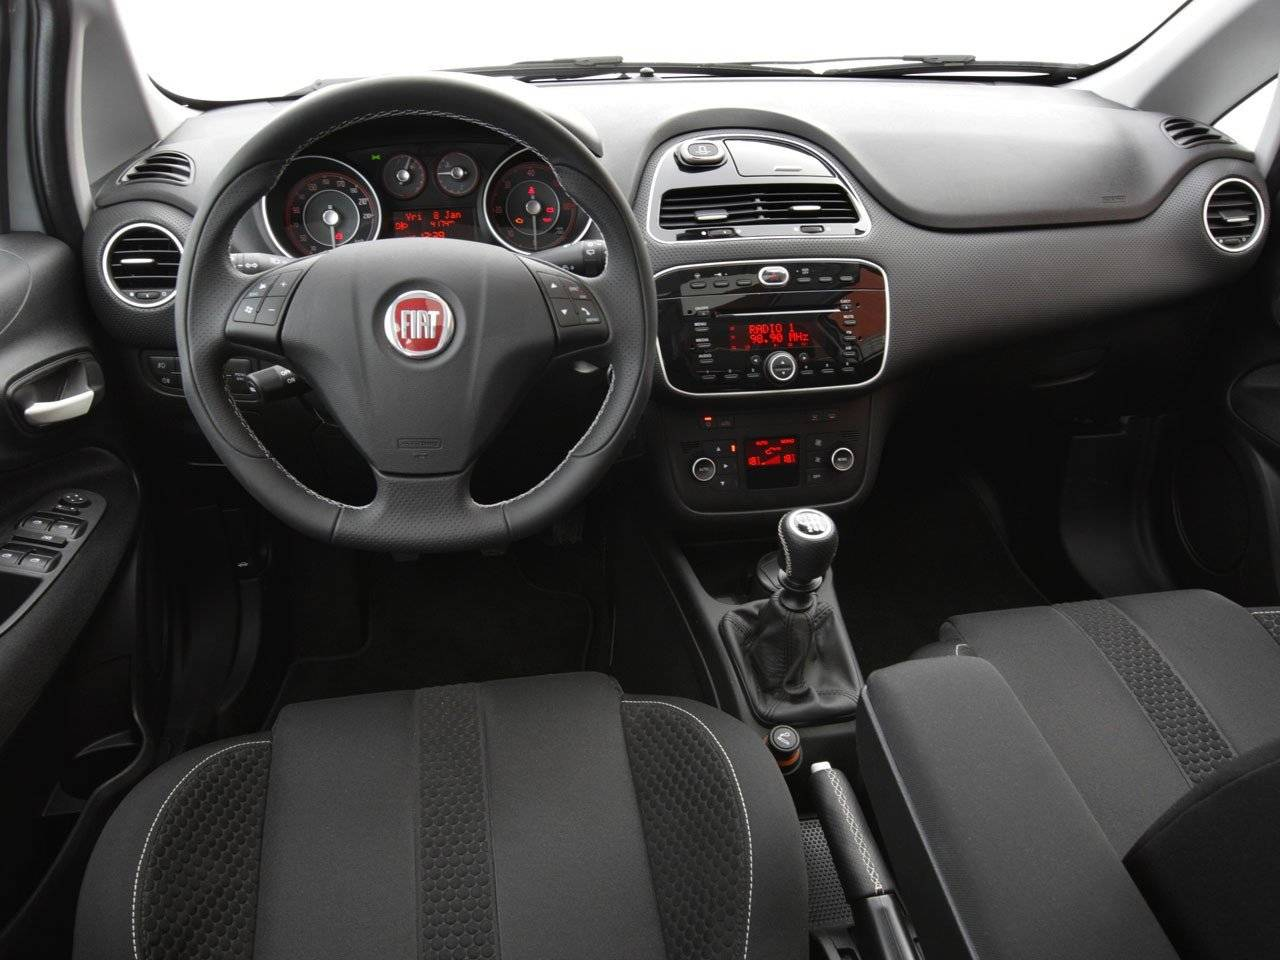 Sportpedale besides Couvercle De Boite A Fusible moreover Serrure De Coffre Alfa Romeo Spider together with Fiat Punto additionally Abarth Punto Evo Car Wallpaper. on 2012 fiat punto abarth